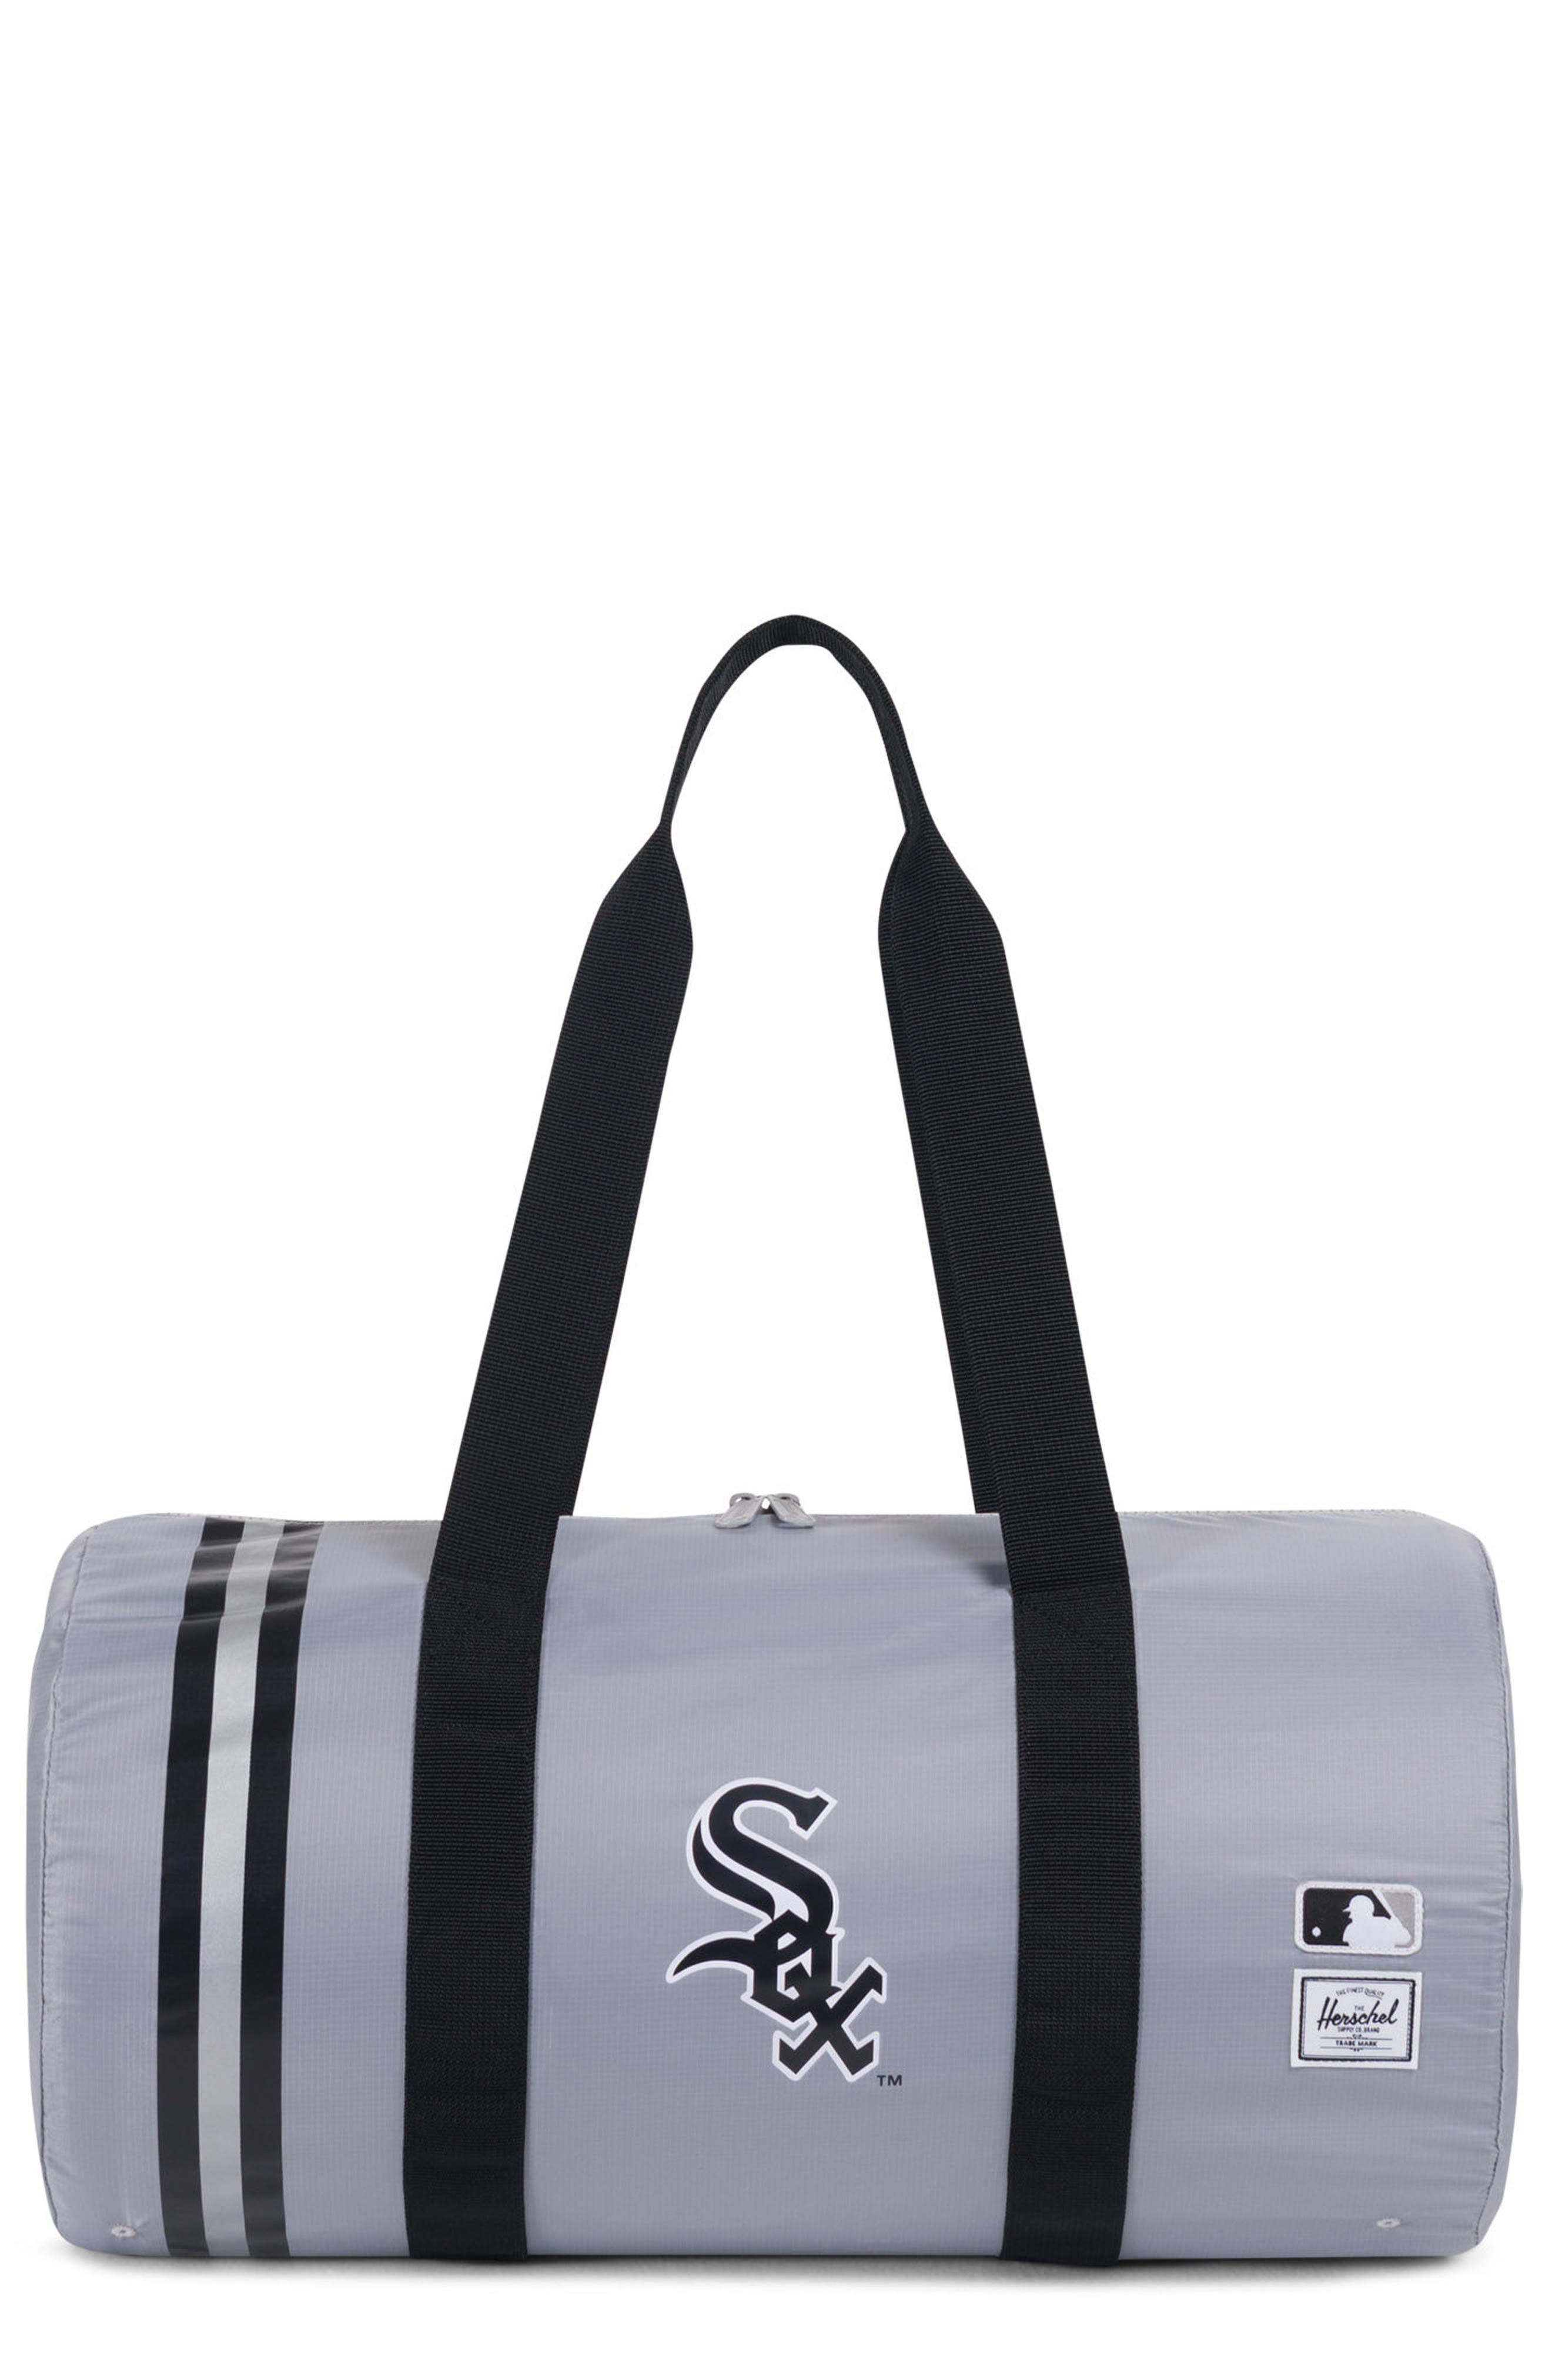 HERSCHEL SUPPLY CO. Packable - MLB American League Duffel Bag, Main, color, CHICAGO WHITE SOX